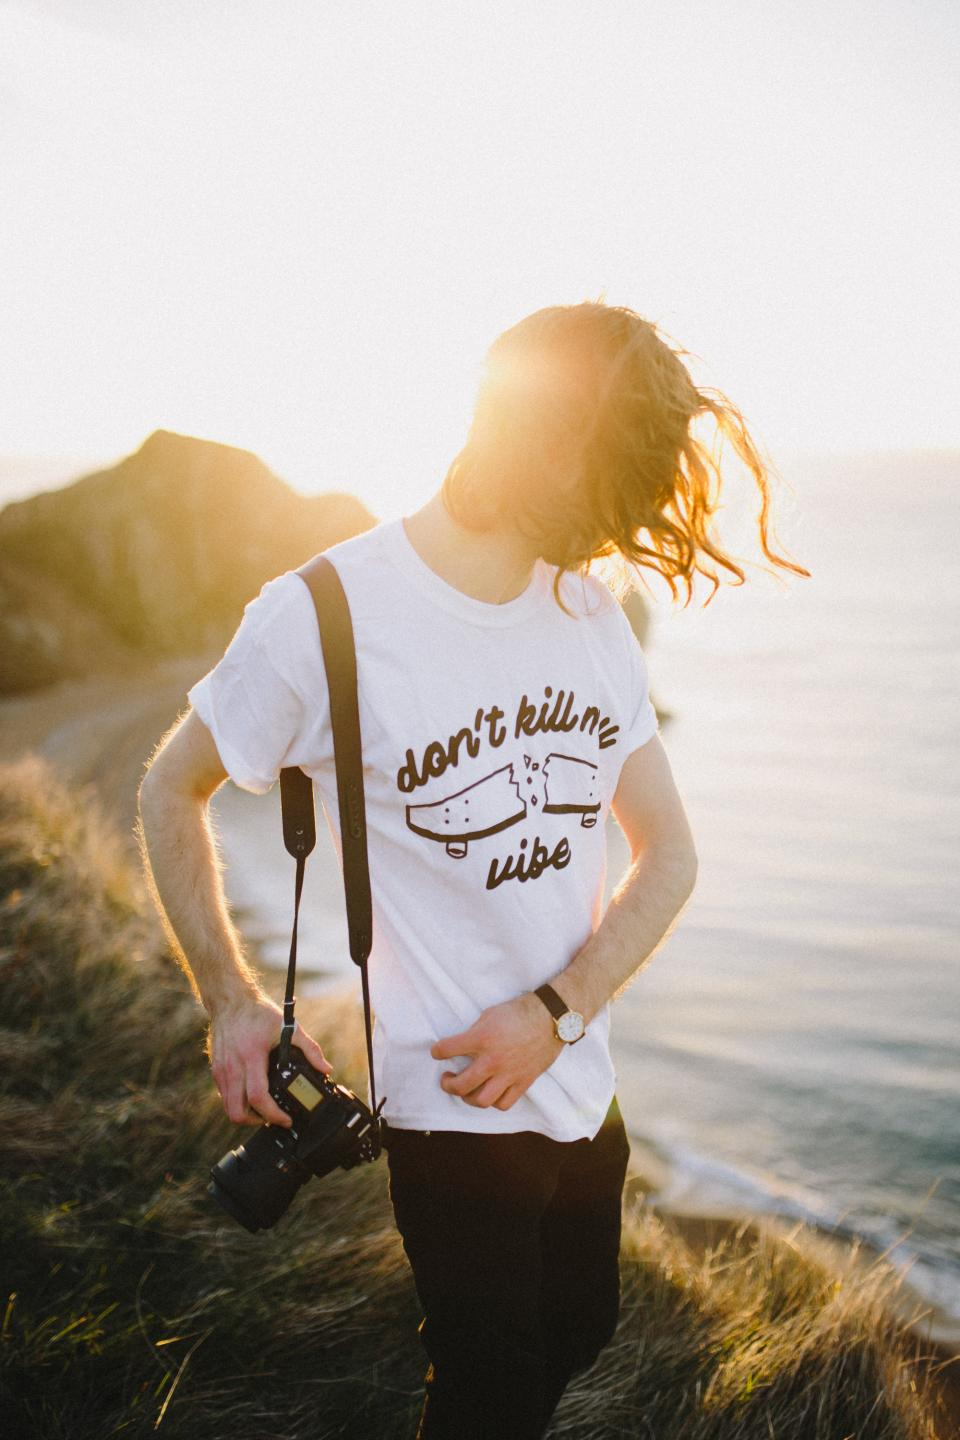 grass blur coast sea water sunrise sunlight people man guy camera strap photographer